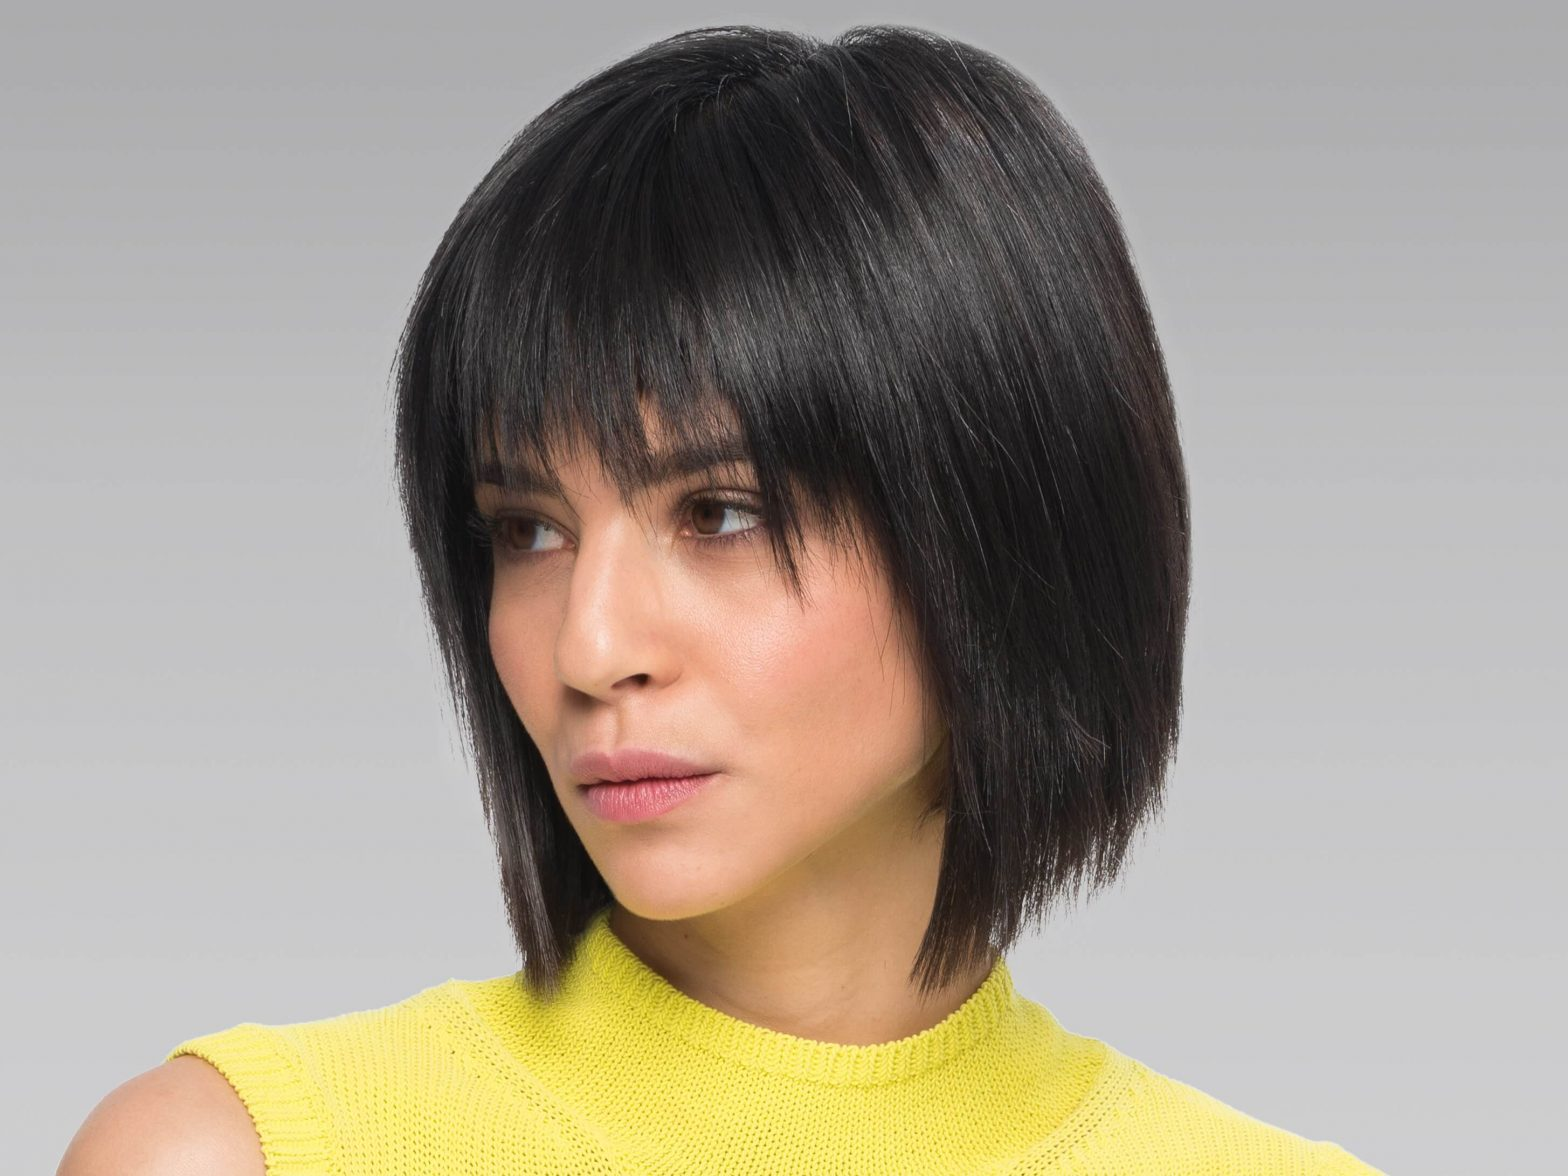 Classic Bob Haircut for Those Who Are Over Seventy